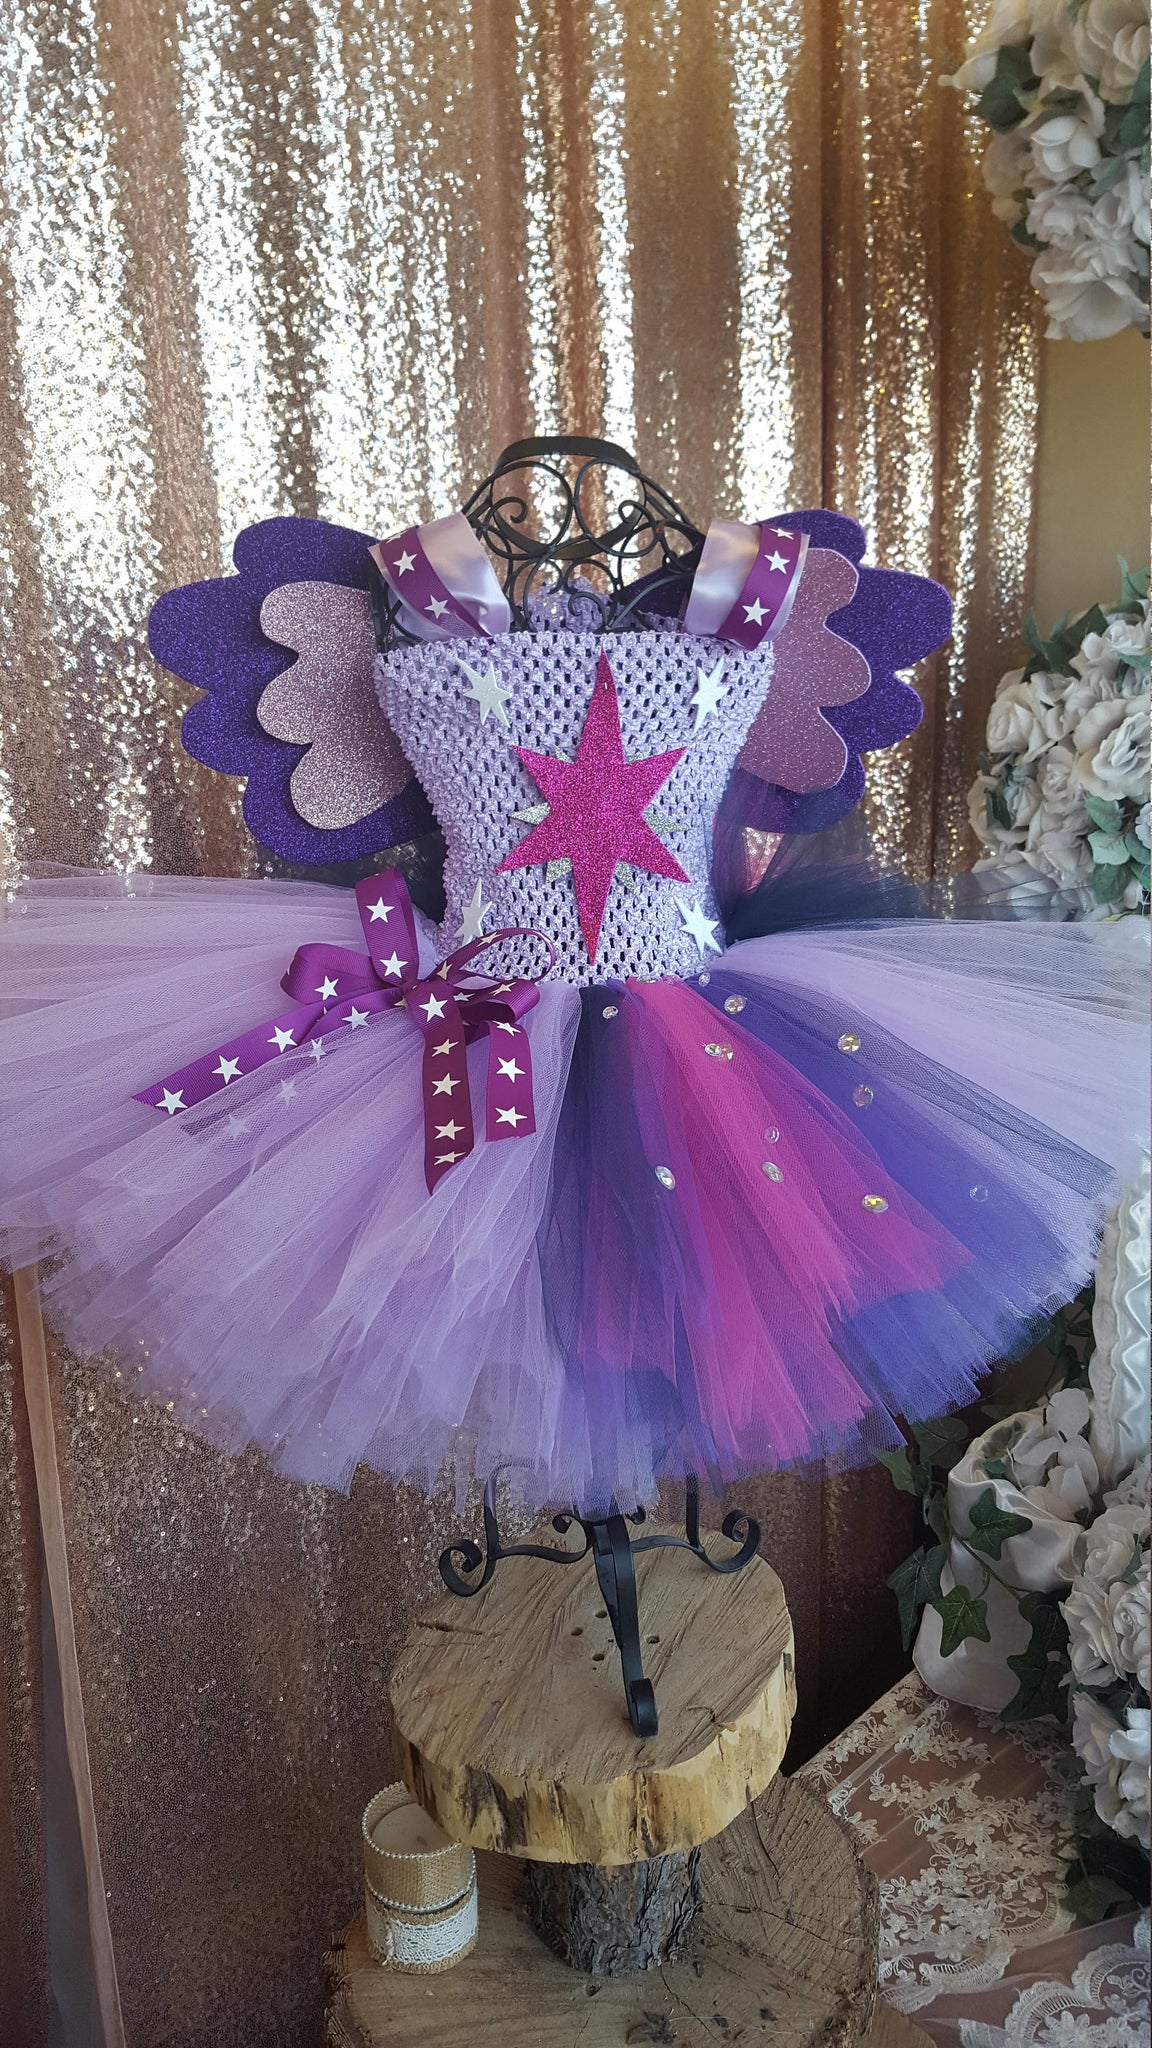 Twilight Sparkle tutu, my little pony tutu, pony tutu, Twilight Sparkle  costume. My little pony birthday party, MLP tutu,